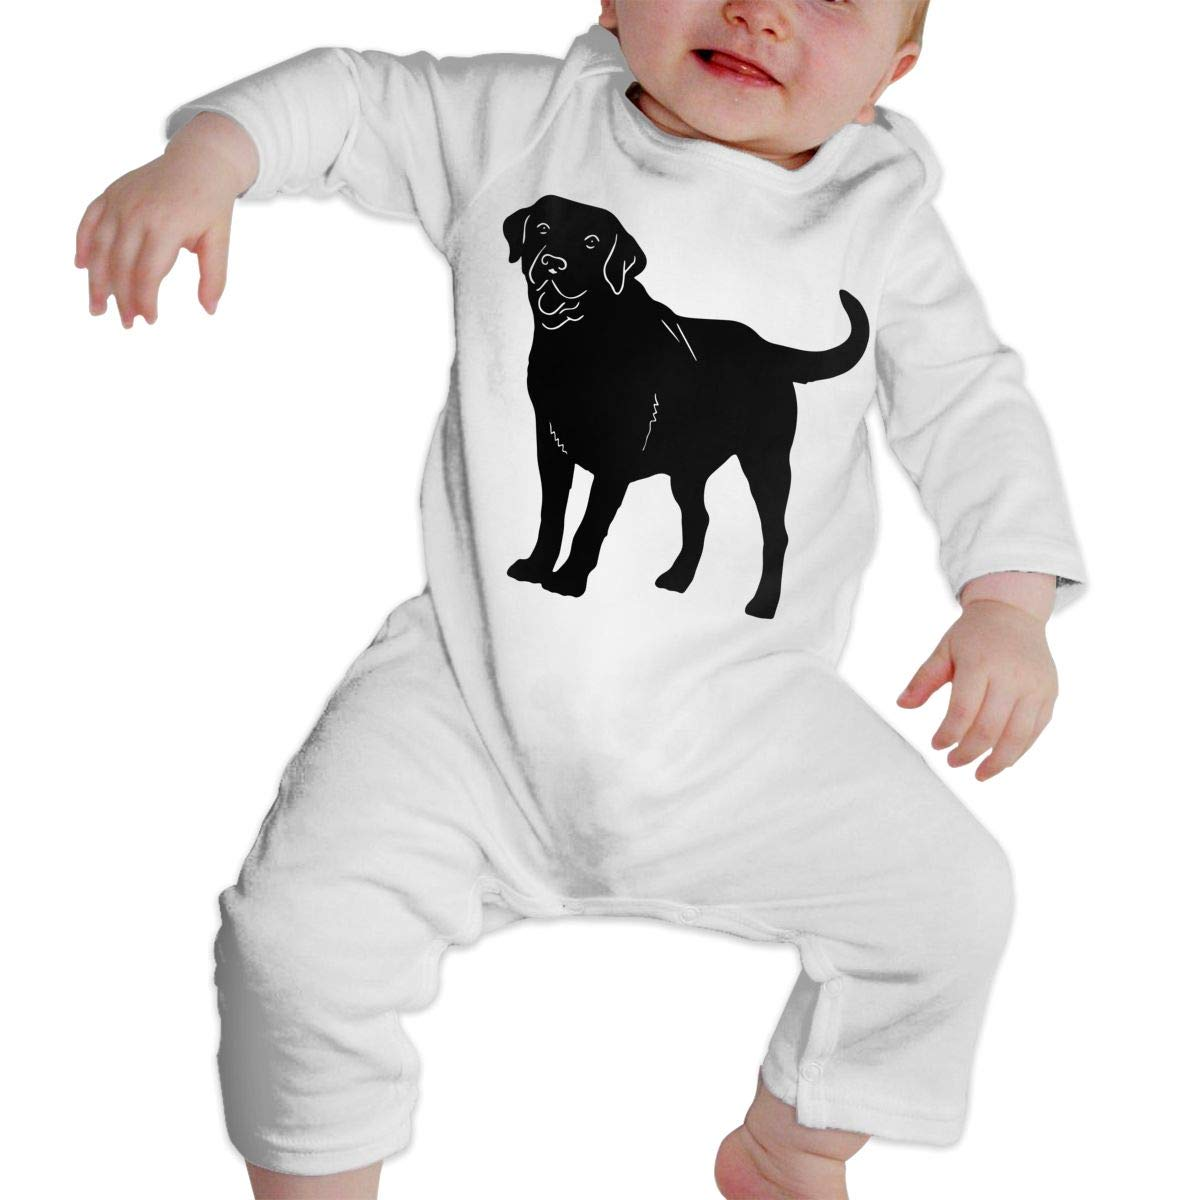 A1BY-5US Infant Baby Girls Cotton Long Sleeve Labrador Baby Clothes One-Piece Romper Clothes